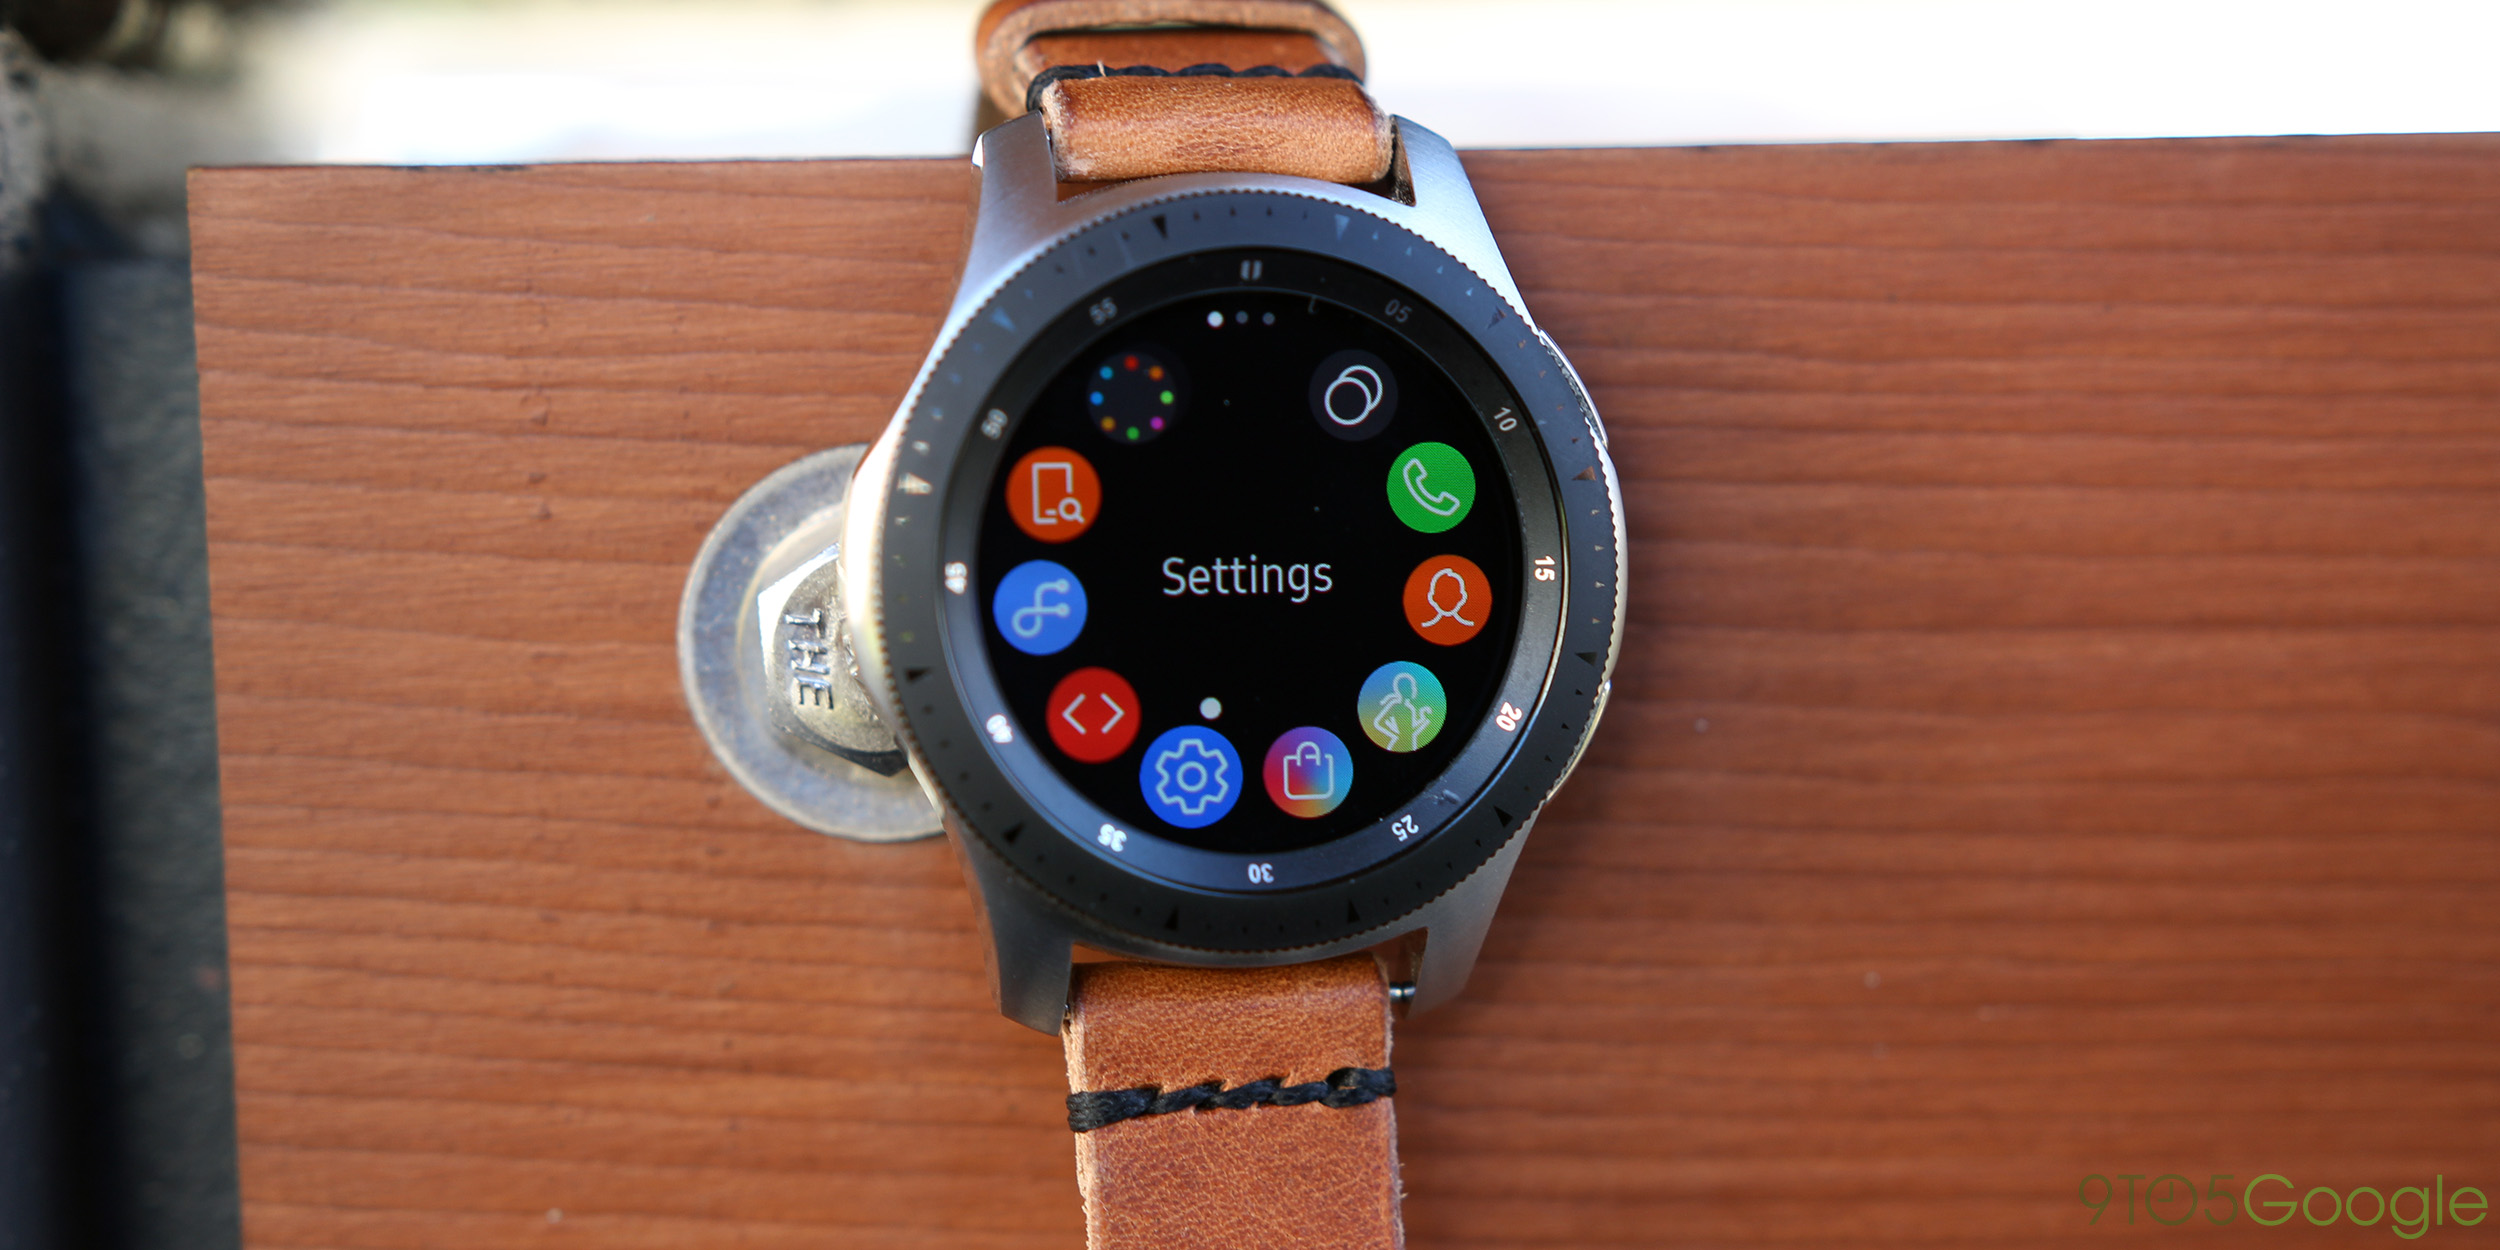 Review: The Samsung Galaxy Watch is the Android smartwatch